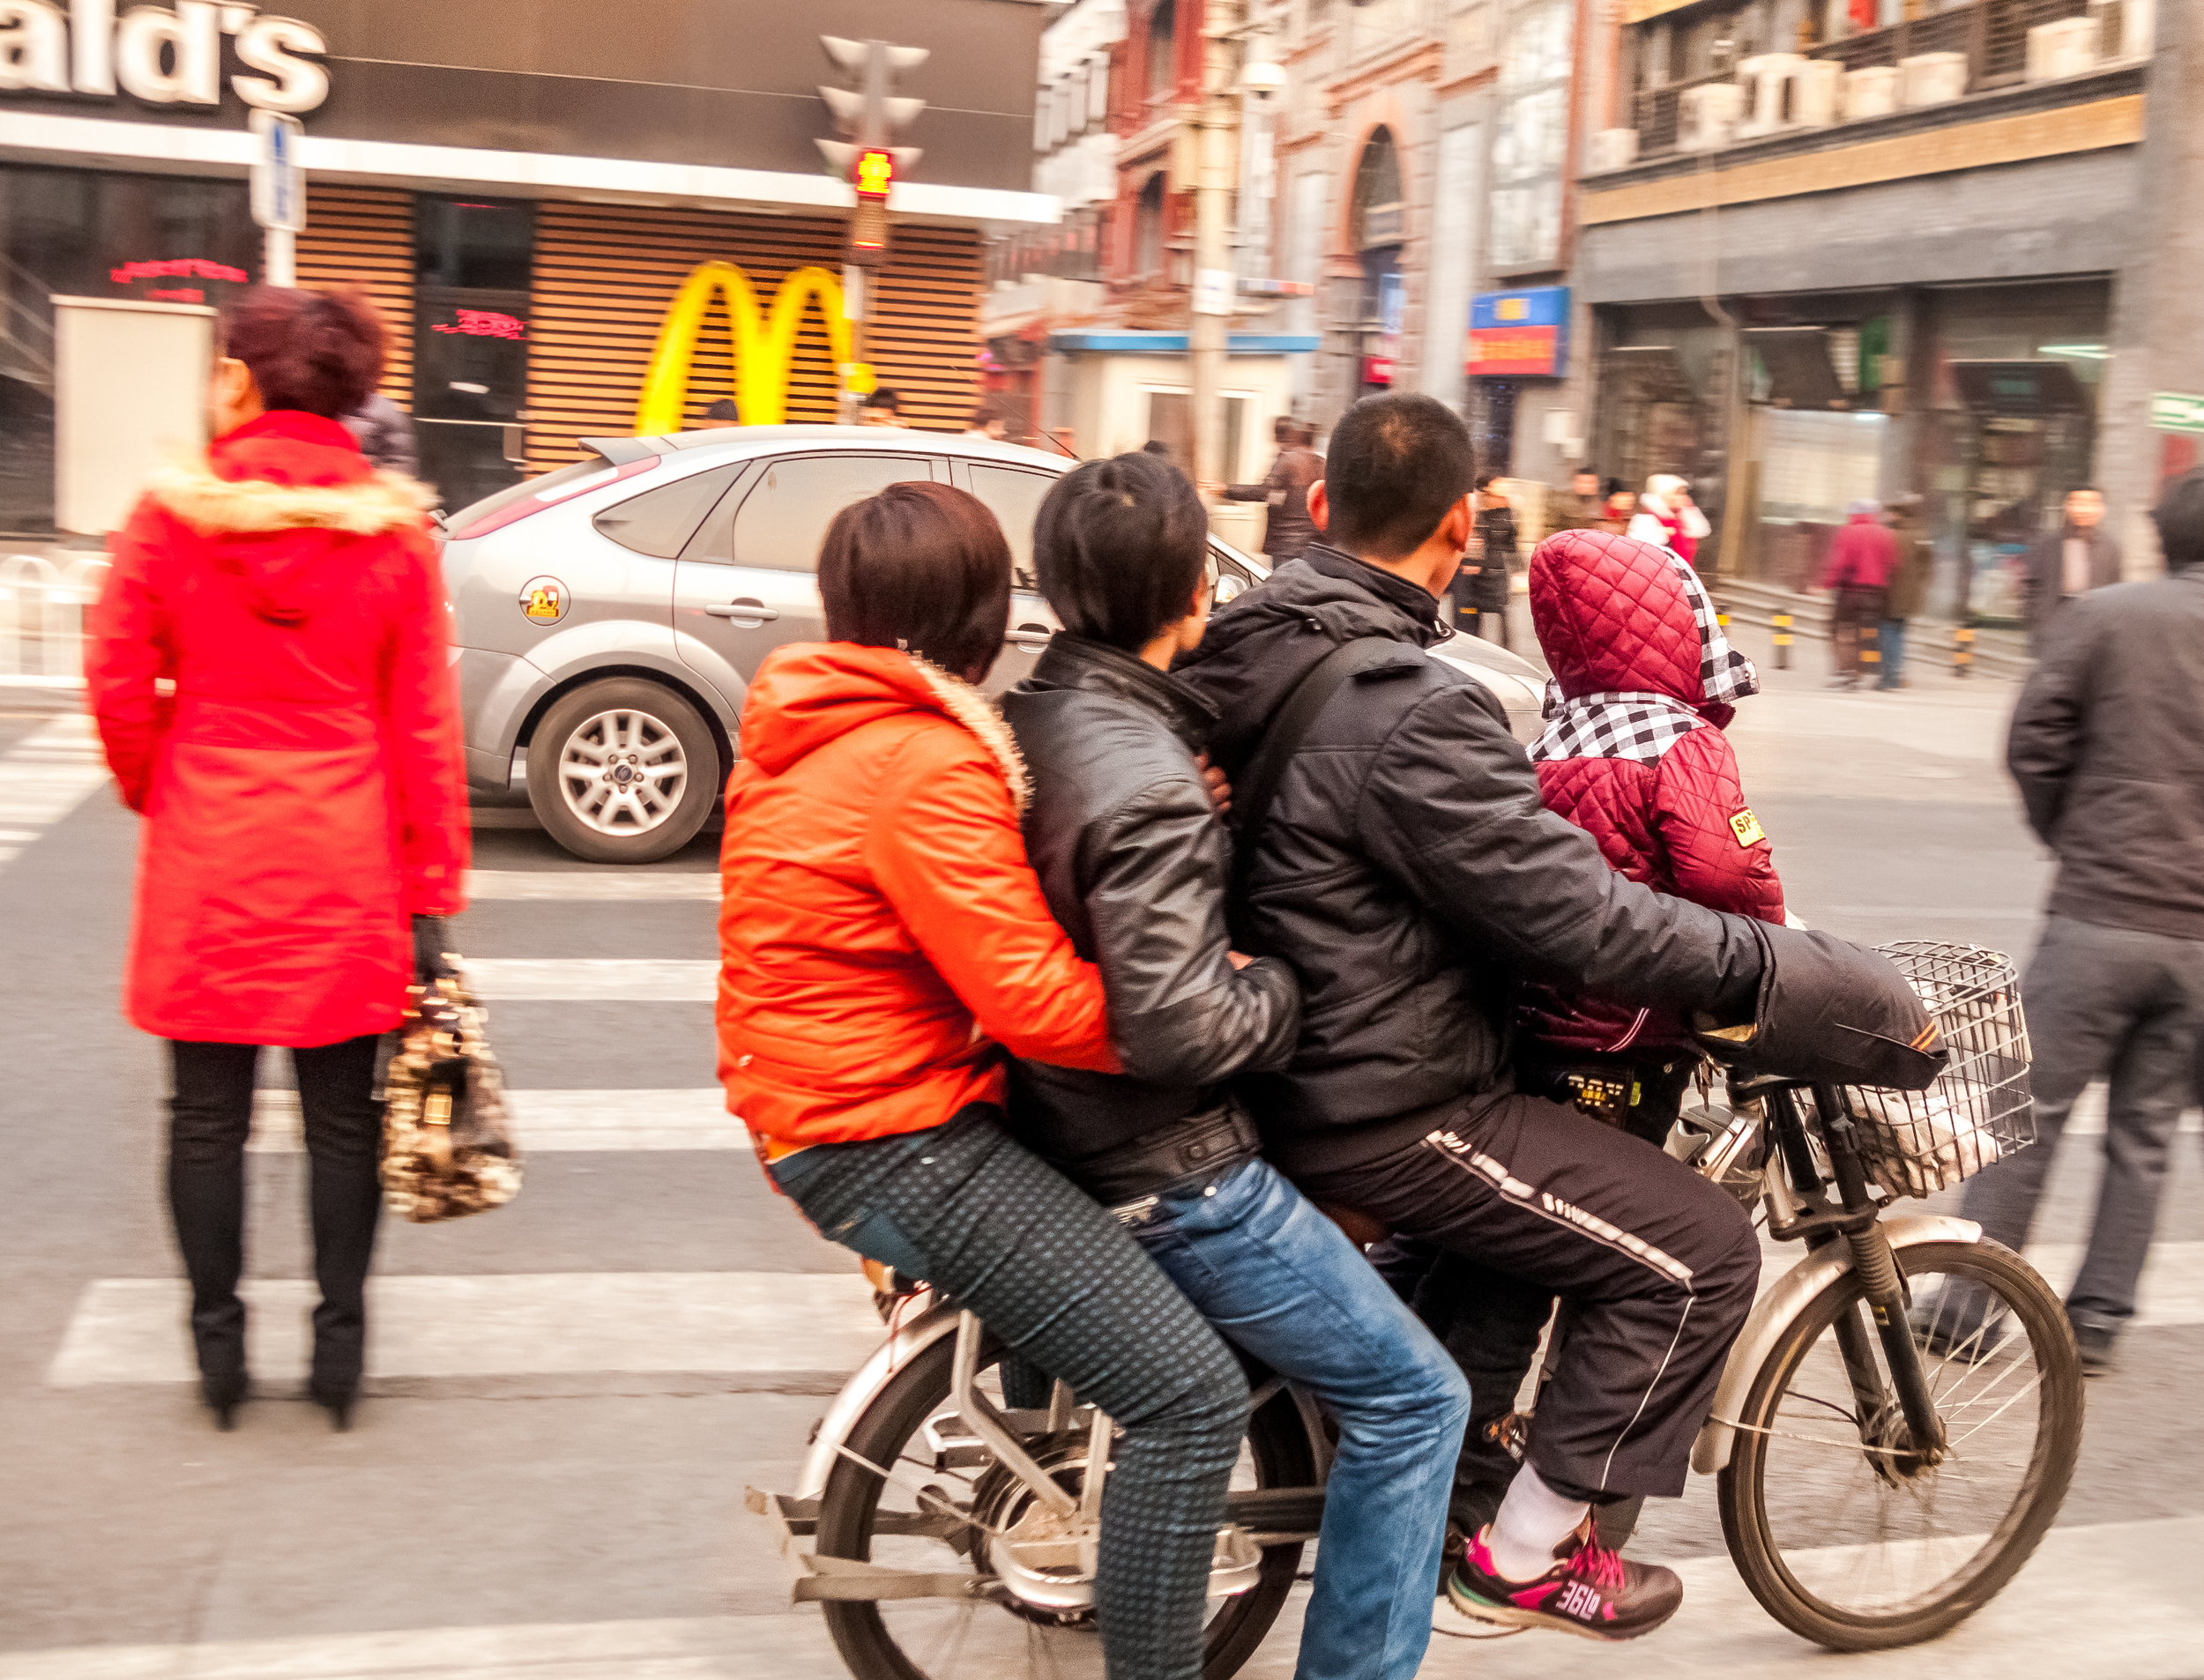 A moped made for 4 . China.